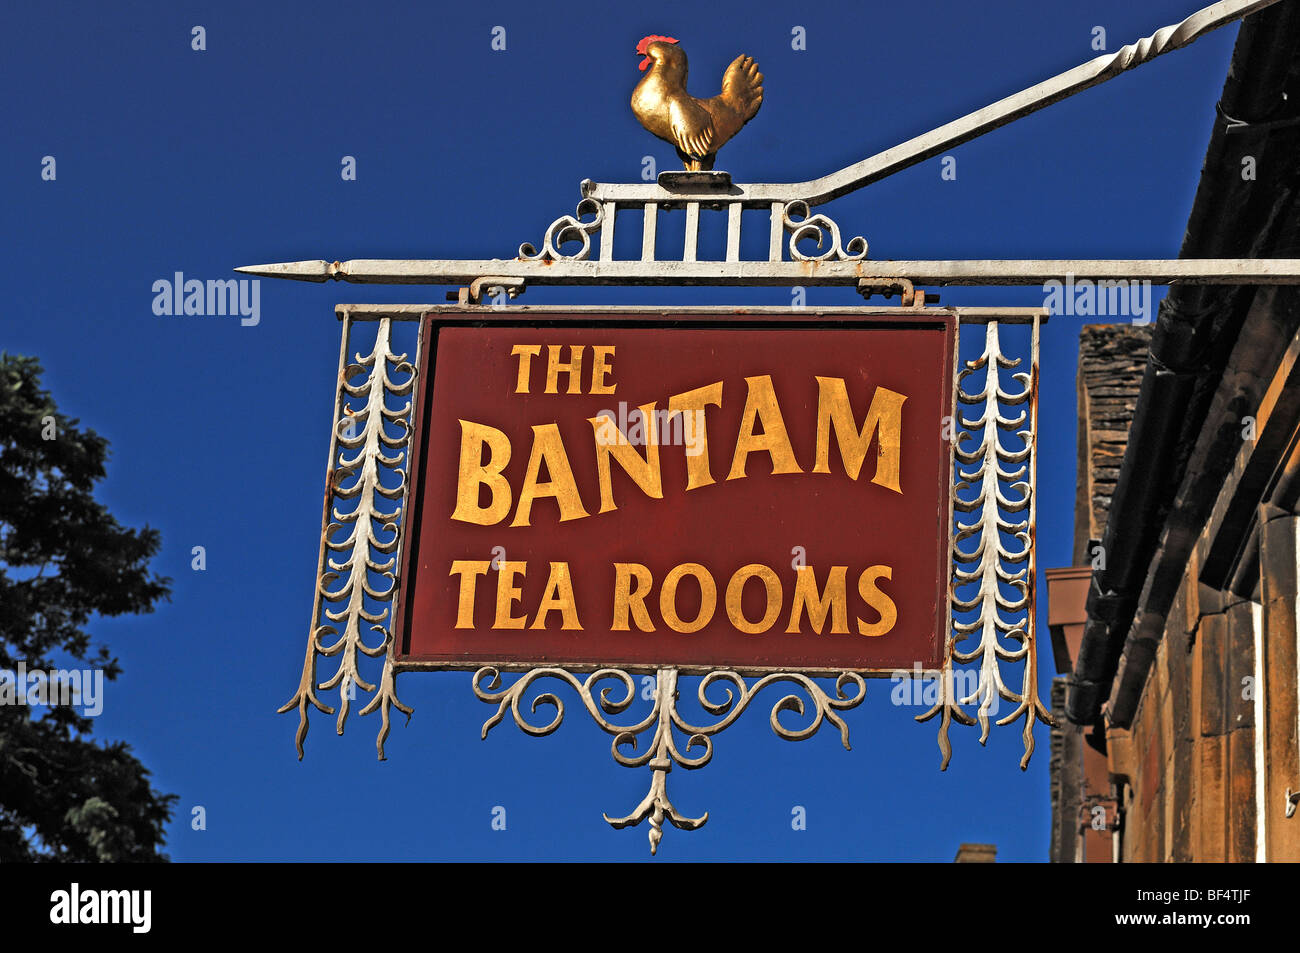 Guesthouse sign, The Bantam Tea Rooms, High Street, Chipping Campden, Gloucestershire, England, United Kingdom, Stock Photo